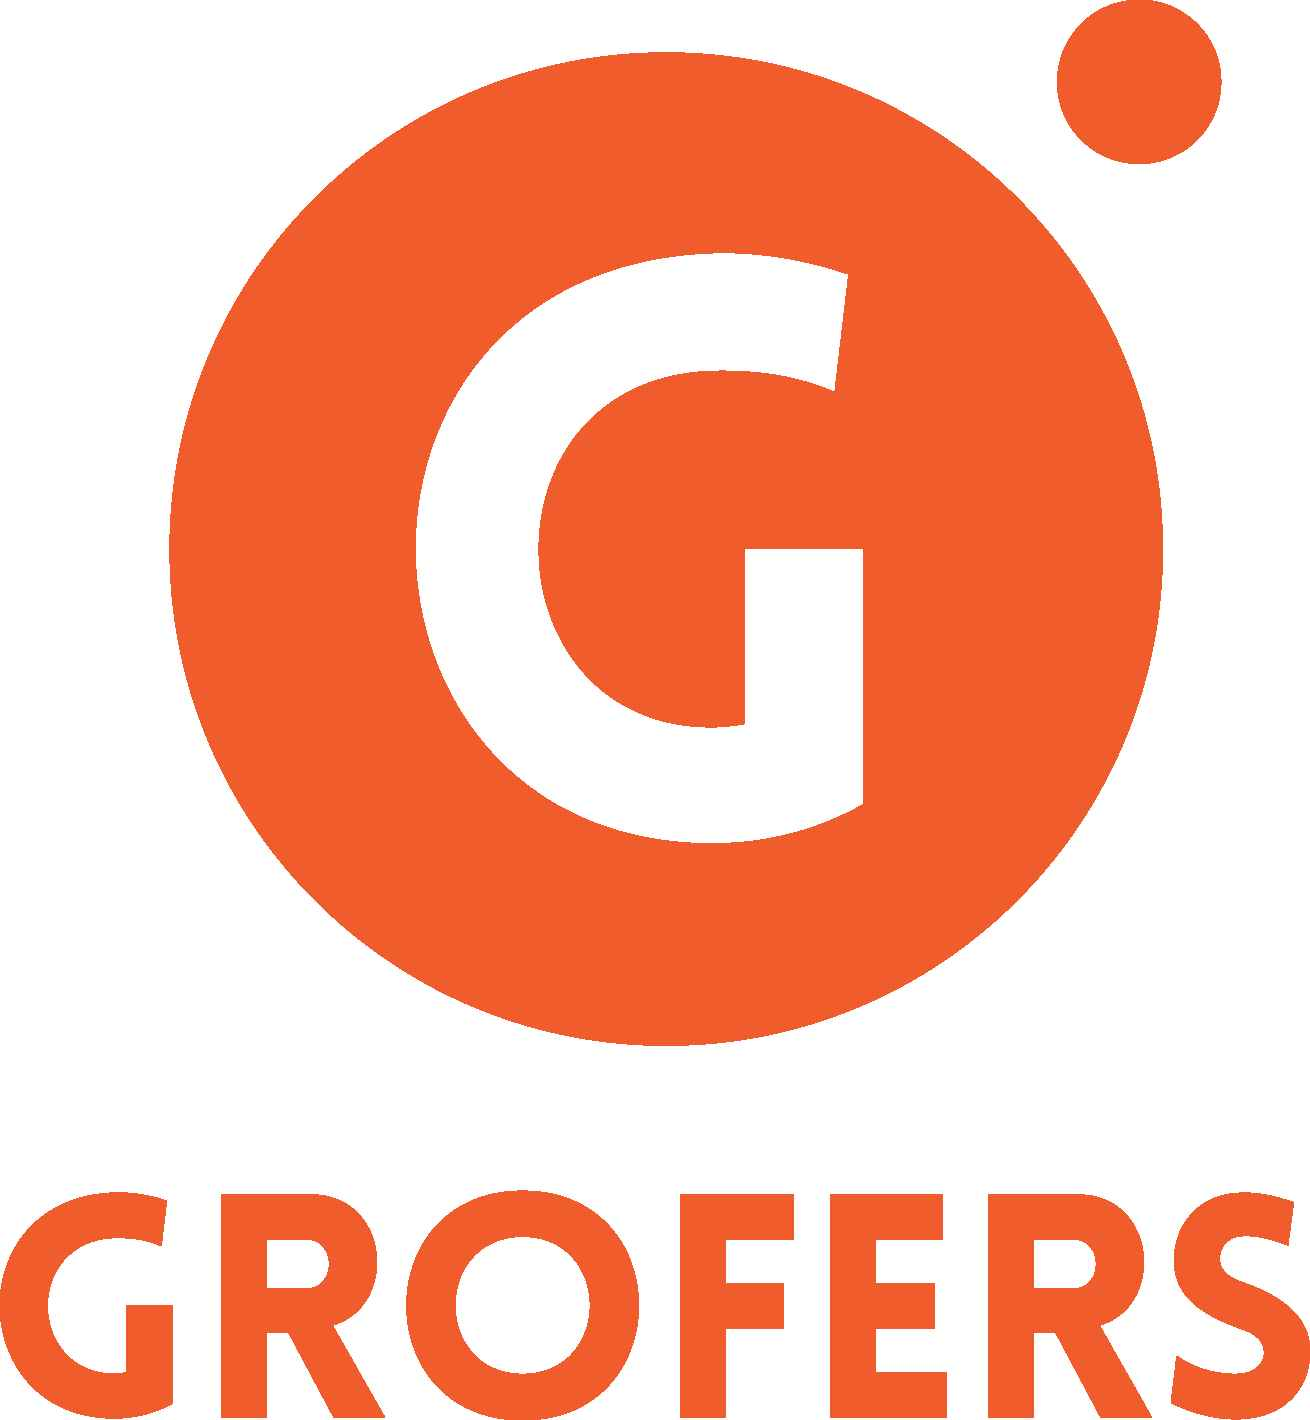 Order Groceries of Rs.500 @ Rs.375 Using Grofers and Phonepe